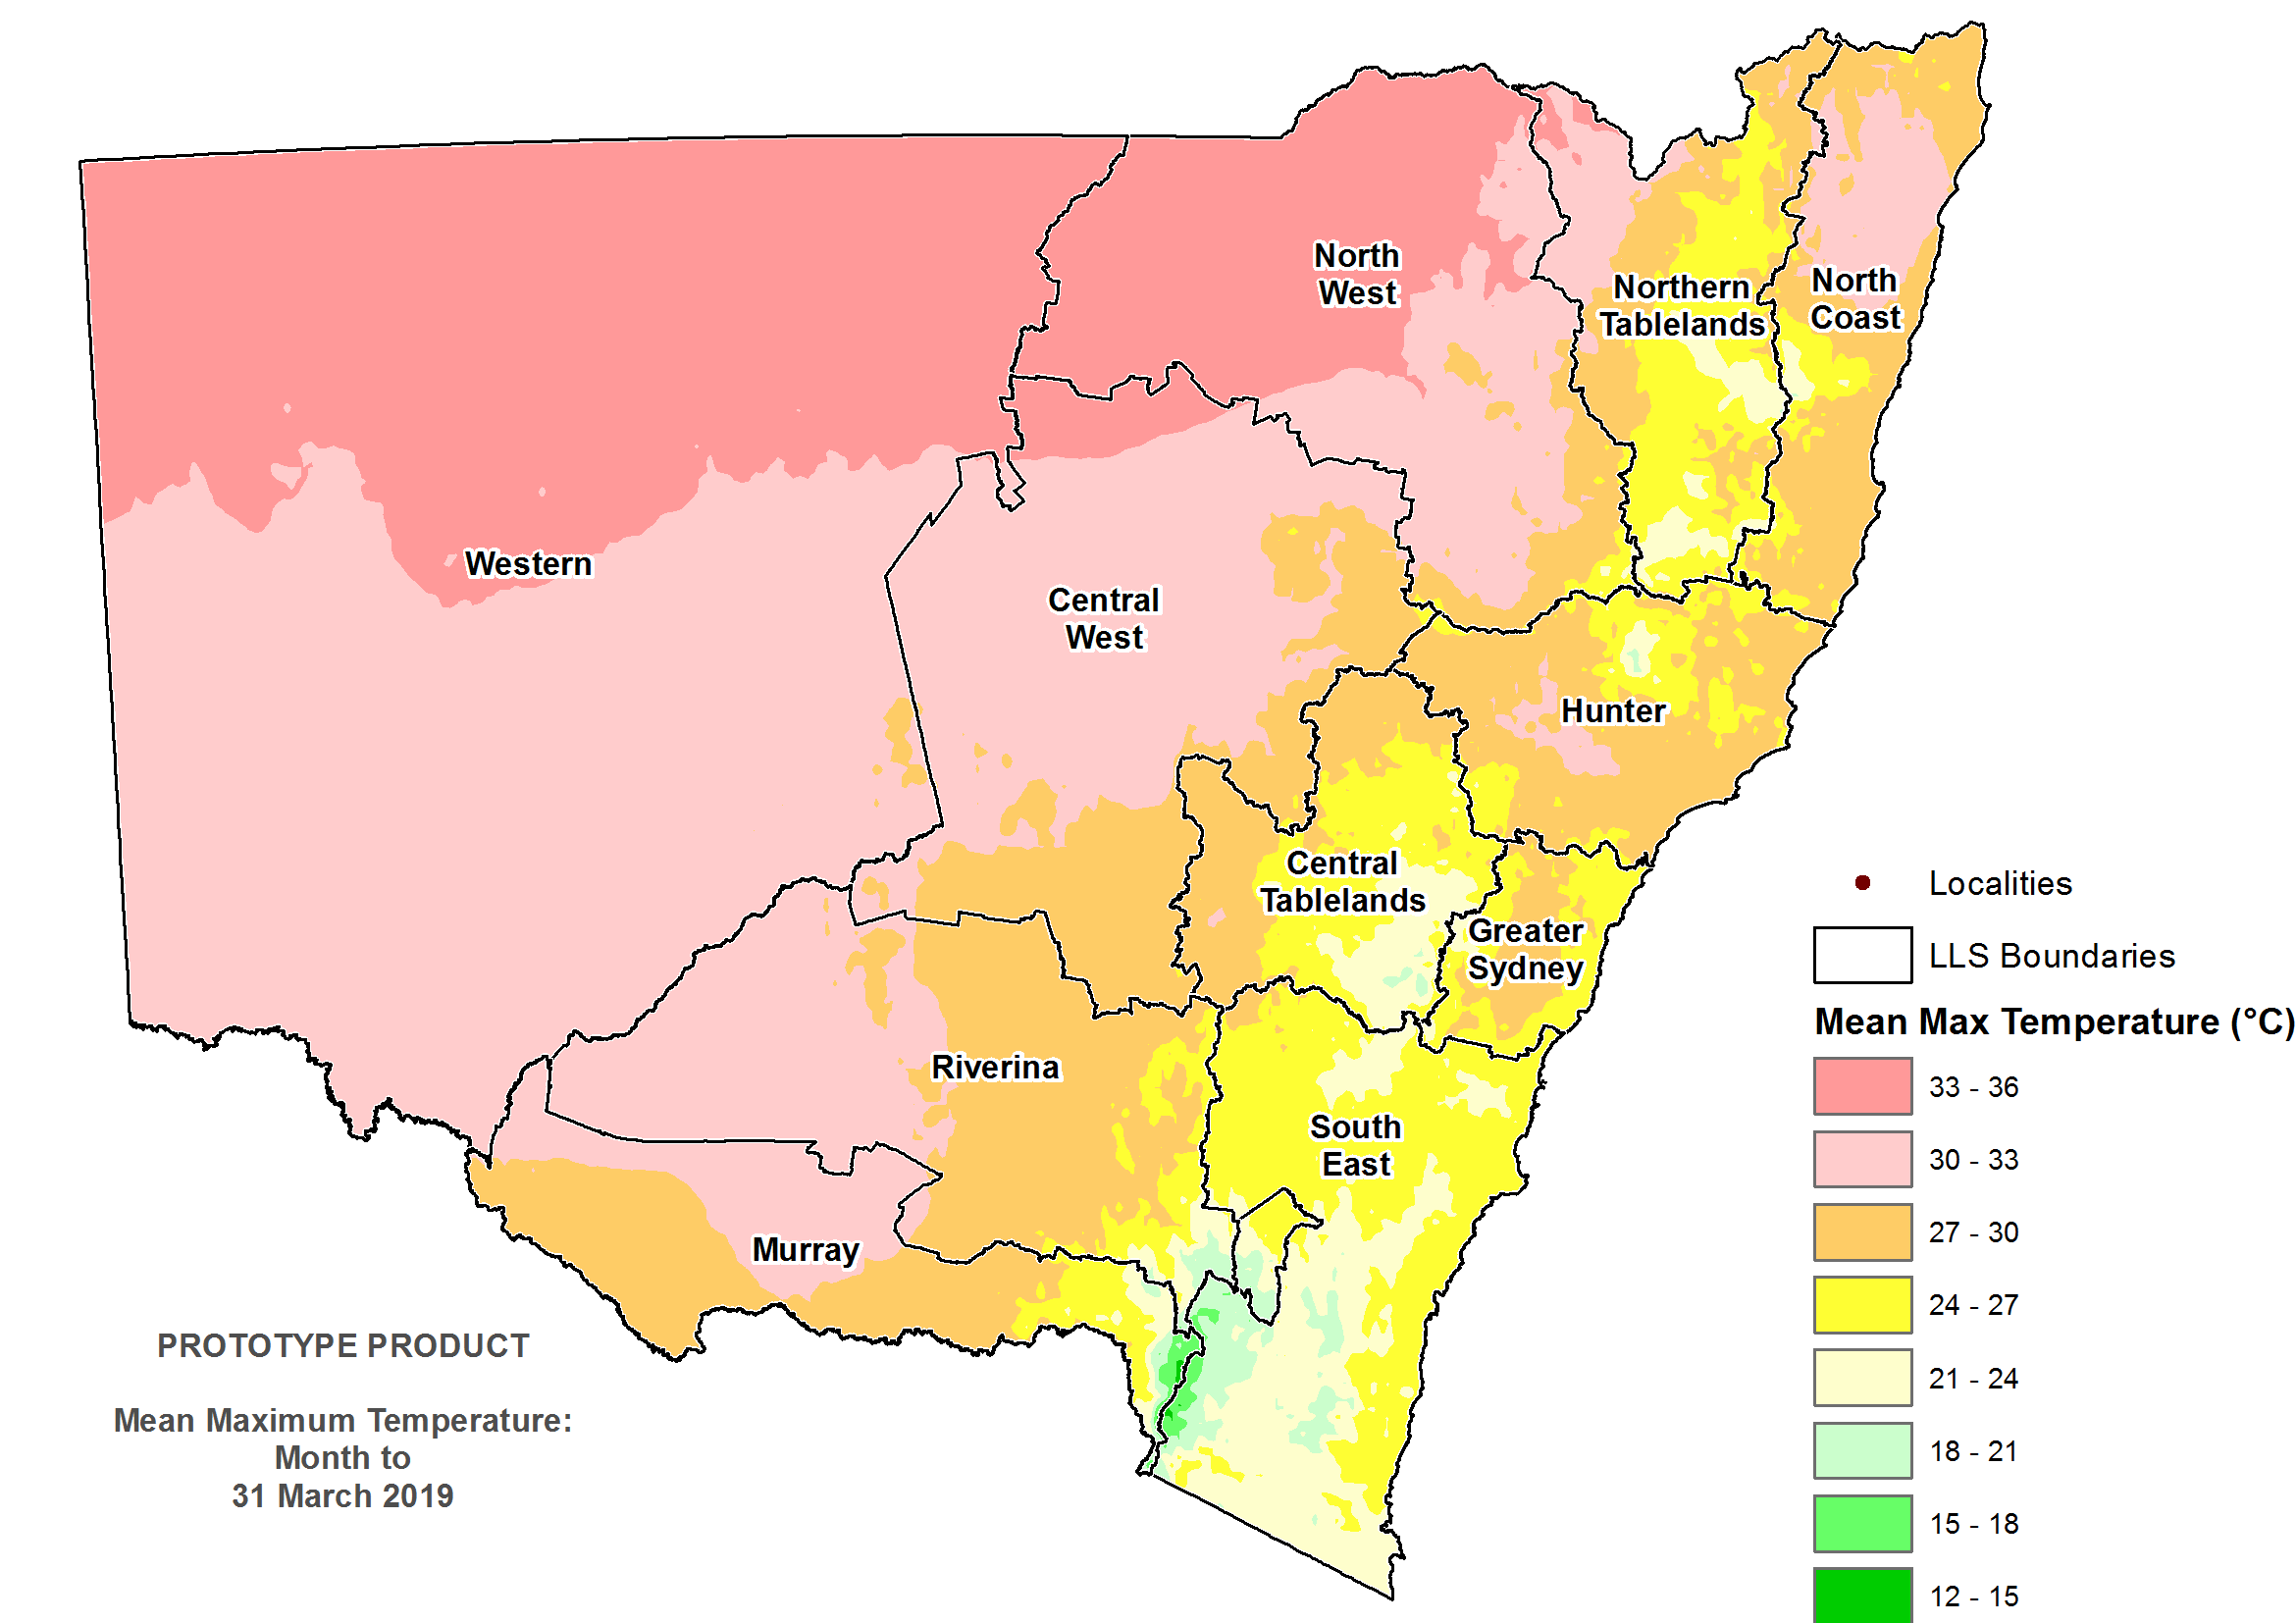 Average daytime temperature March 2019 - For an accessible explanation of this image contact scott.wallace@dpi.nsw.gov.au